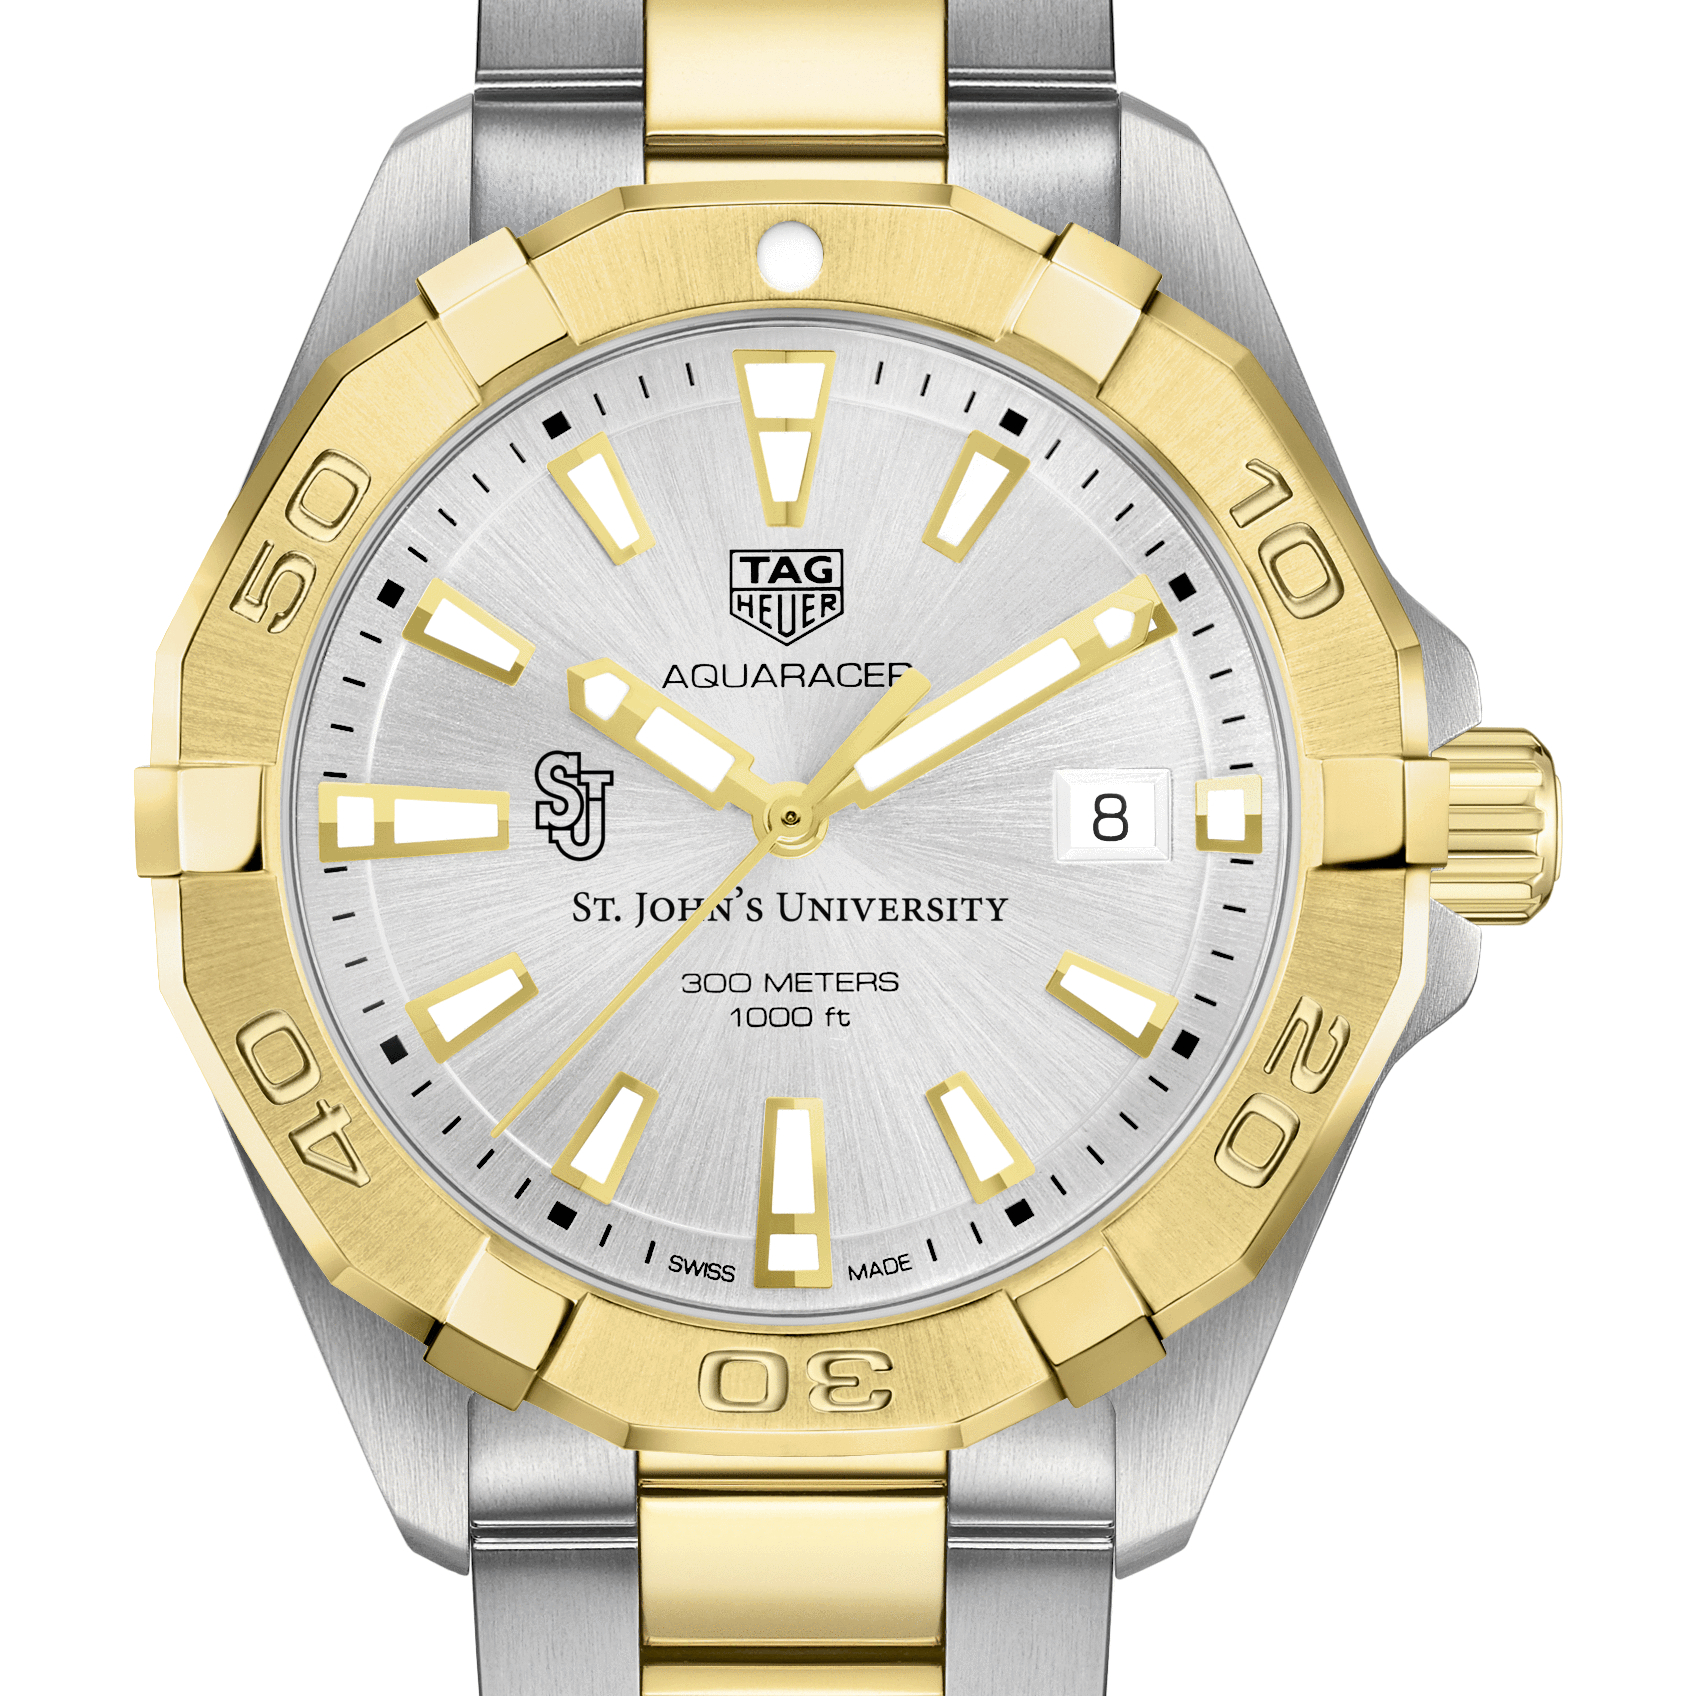 St. John's University Men's TAG Heuer Two-Tone Aquaracer